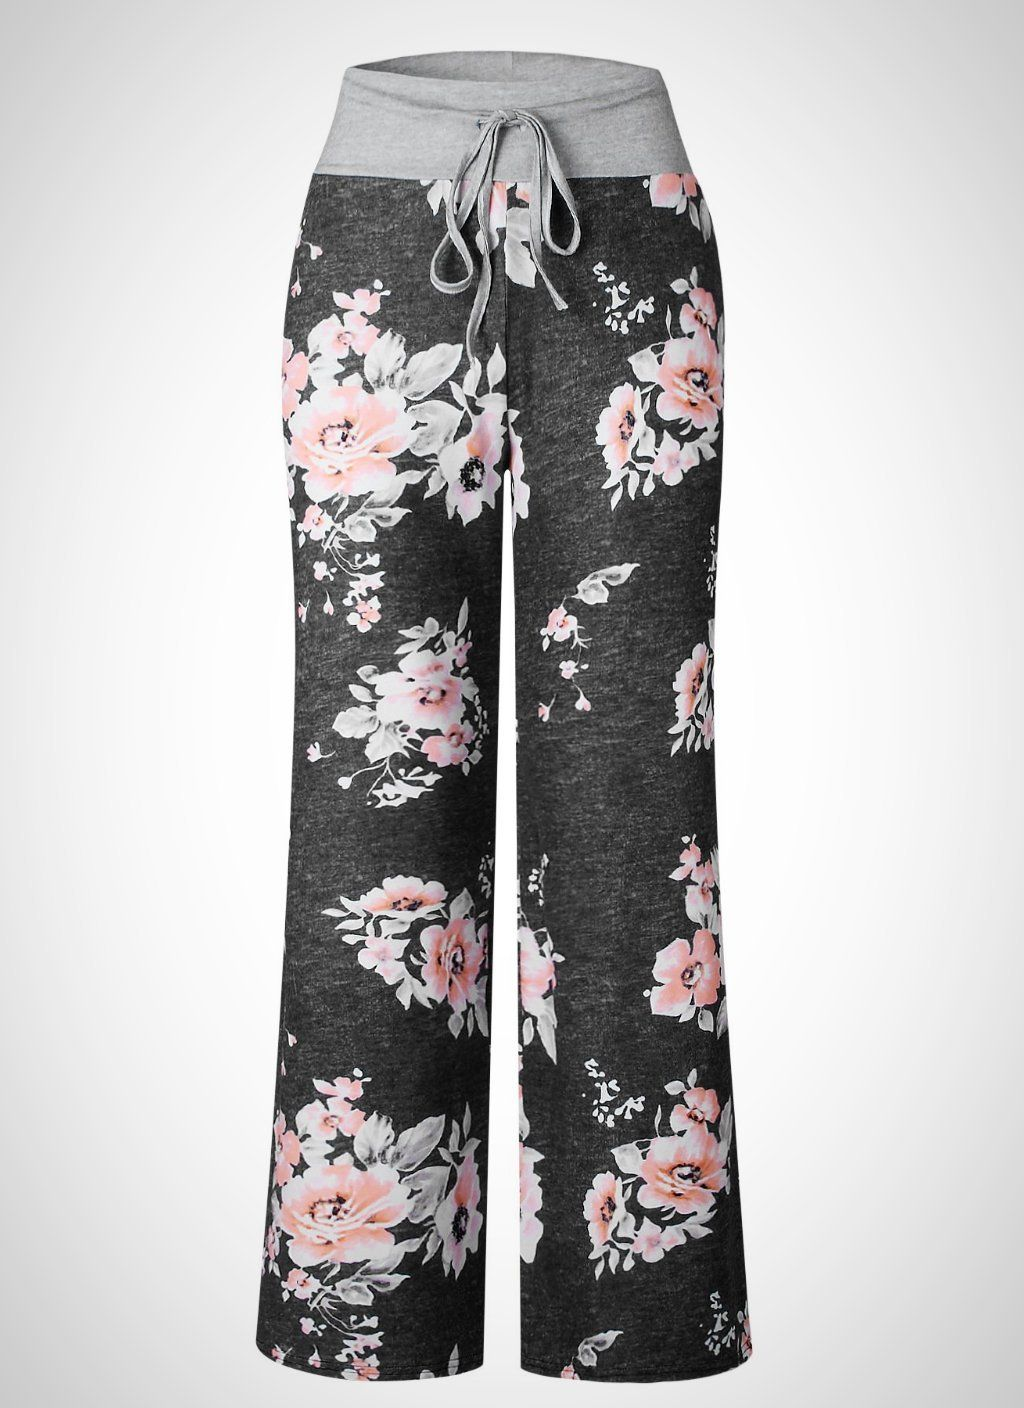 0d1329e61067f Comfy and cozy in soft floral patterned cotton blend and patterned